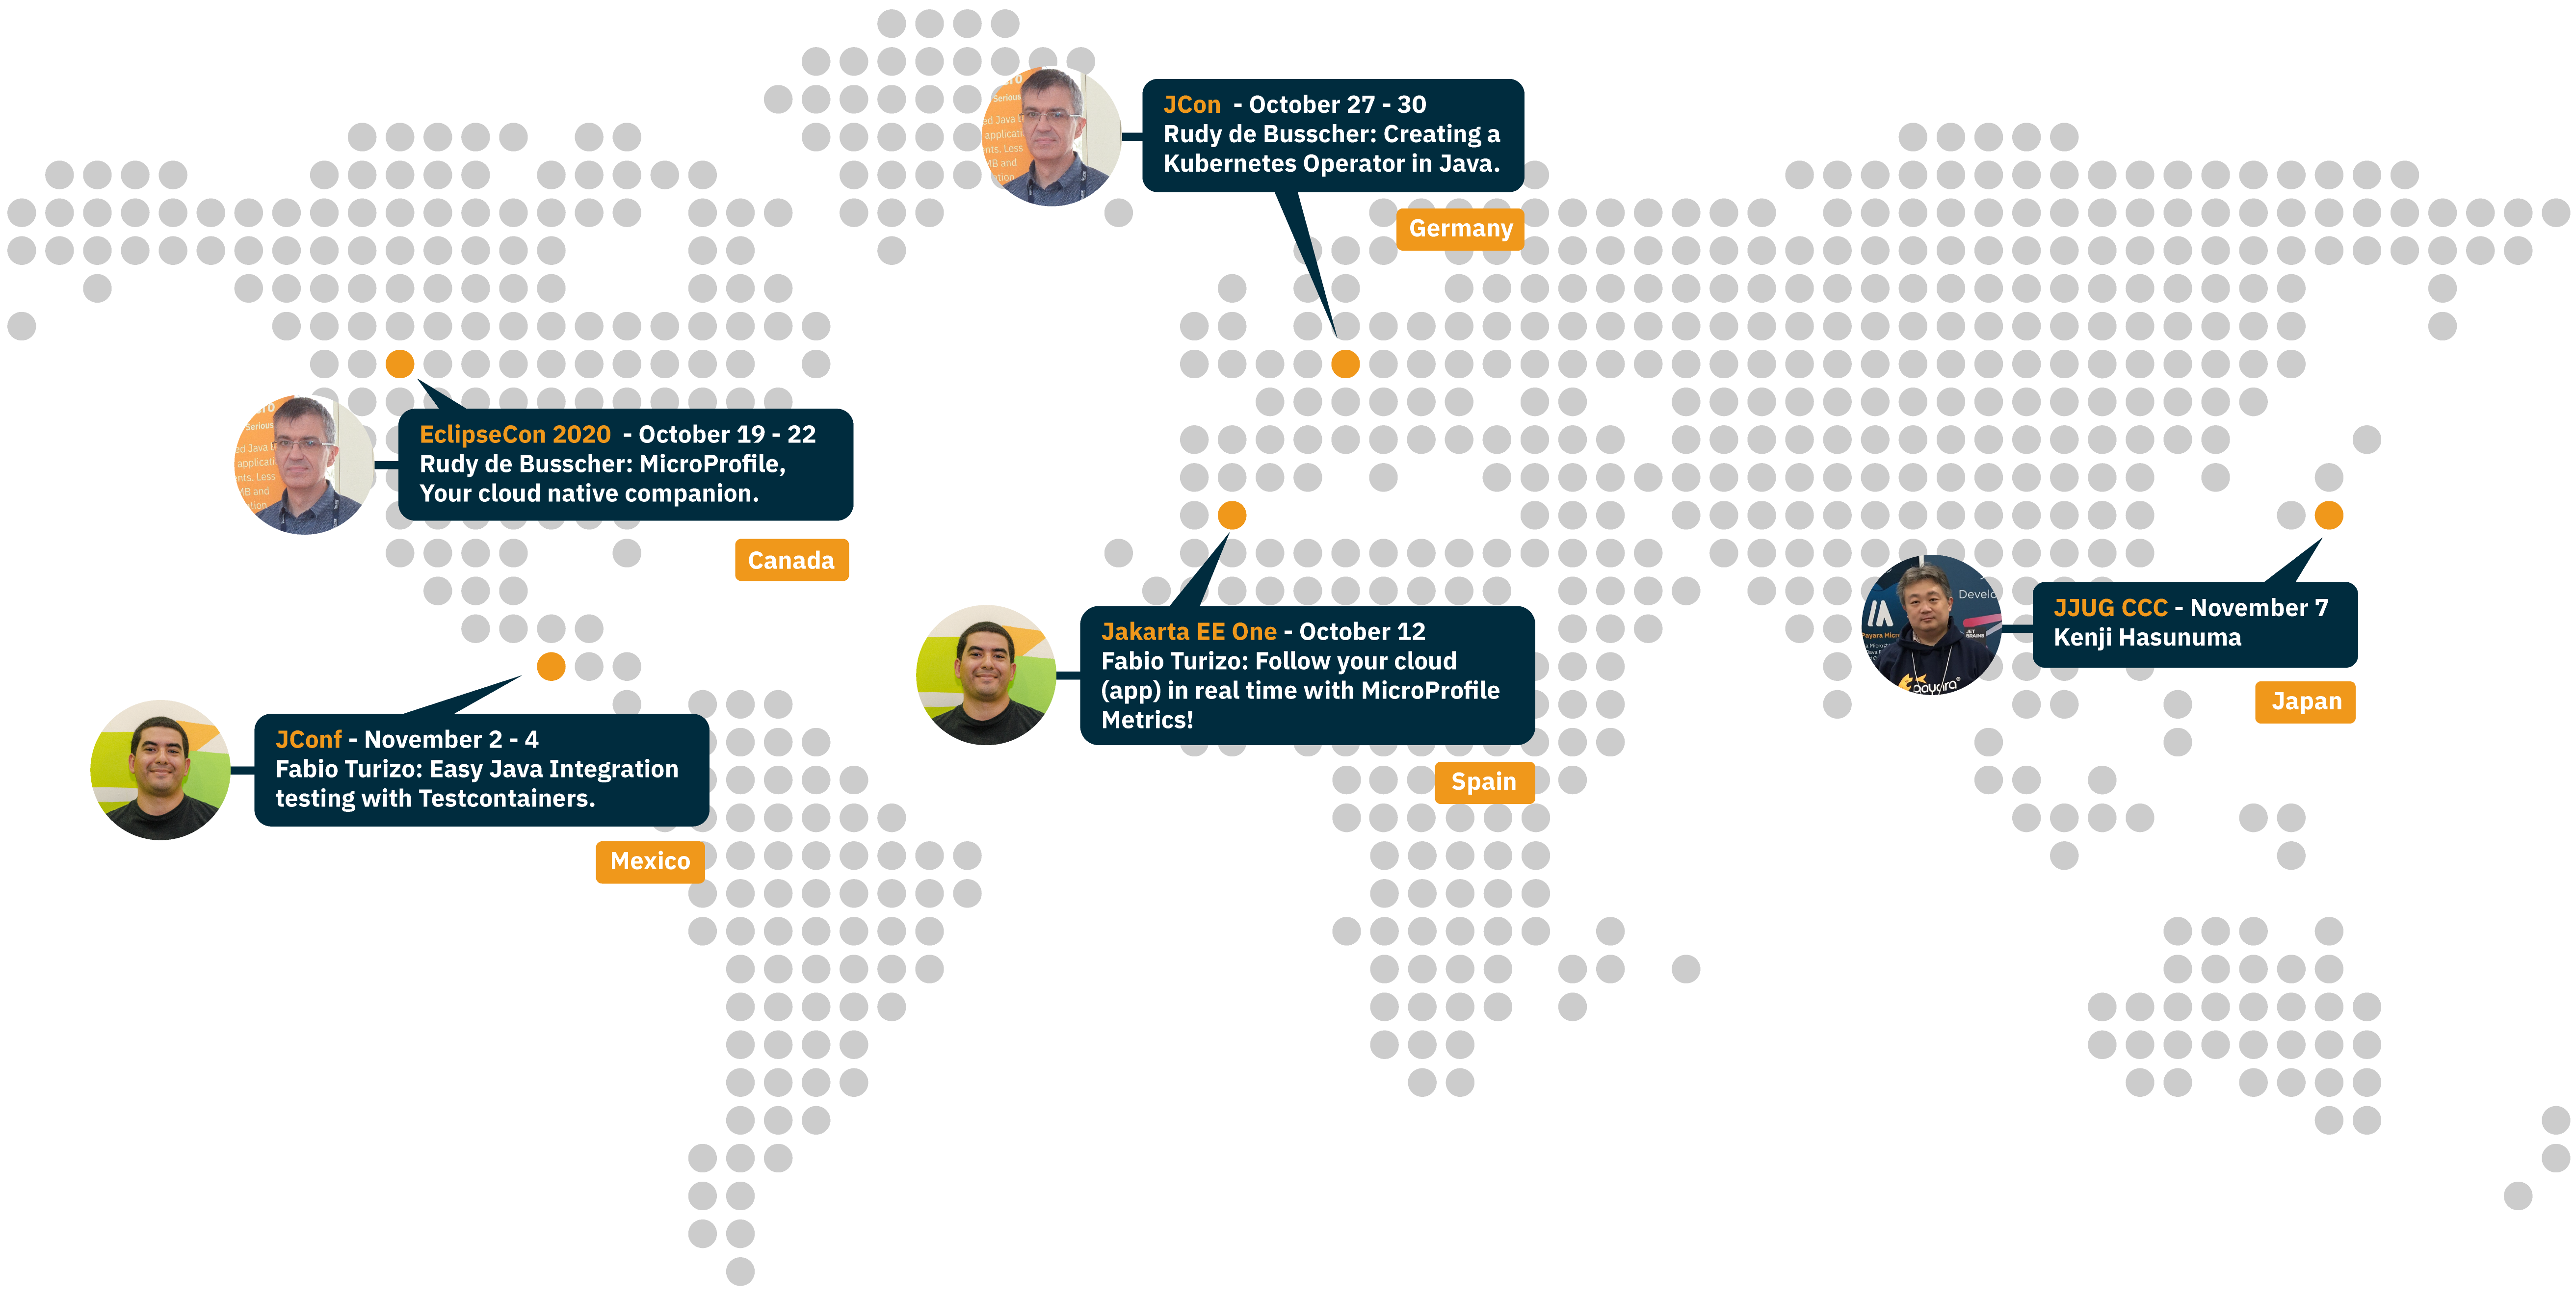 Payara Global conferences - speakers added to world map